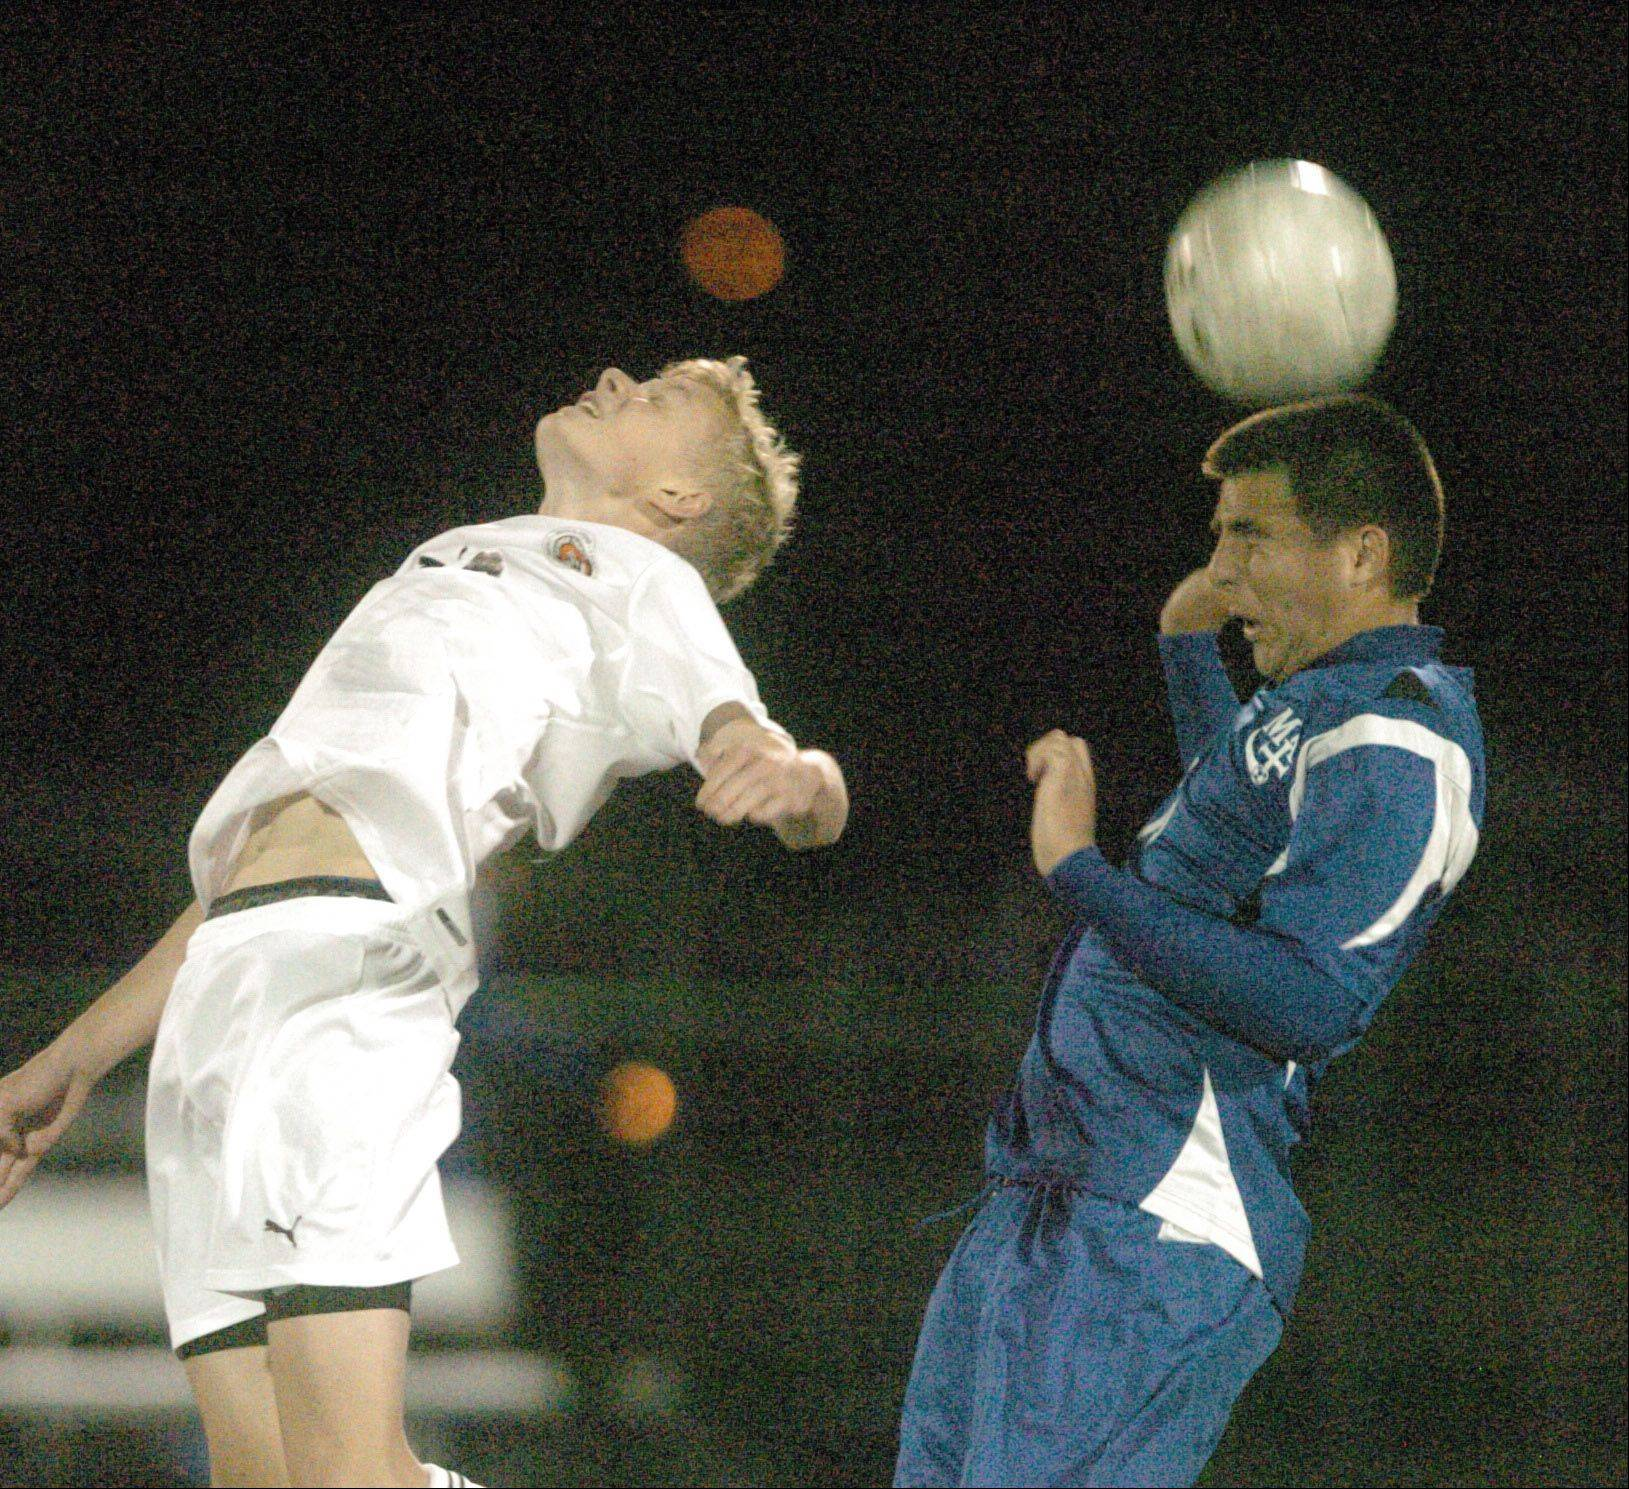 Patrick Nielsen of Wheaton Warrenville South and Claudio Jasso of Marmion go up for a ball during the Wheaton Warrenville South vs. Marmion game at Naperville North Tuesday.